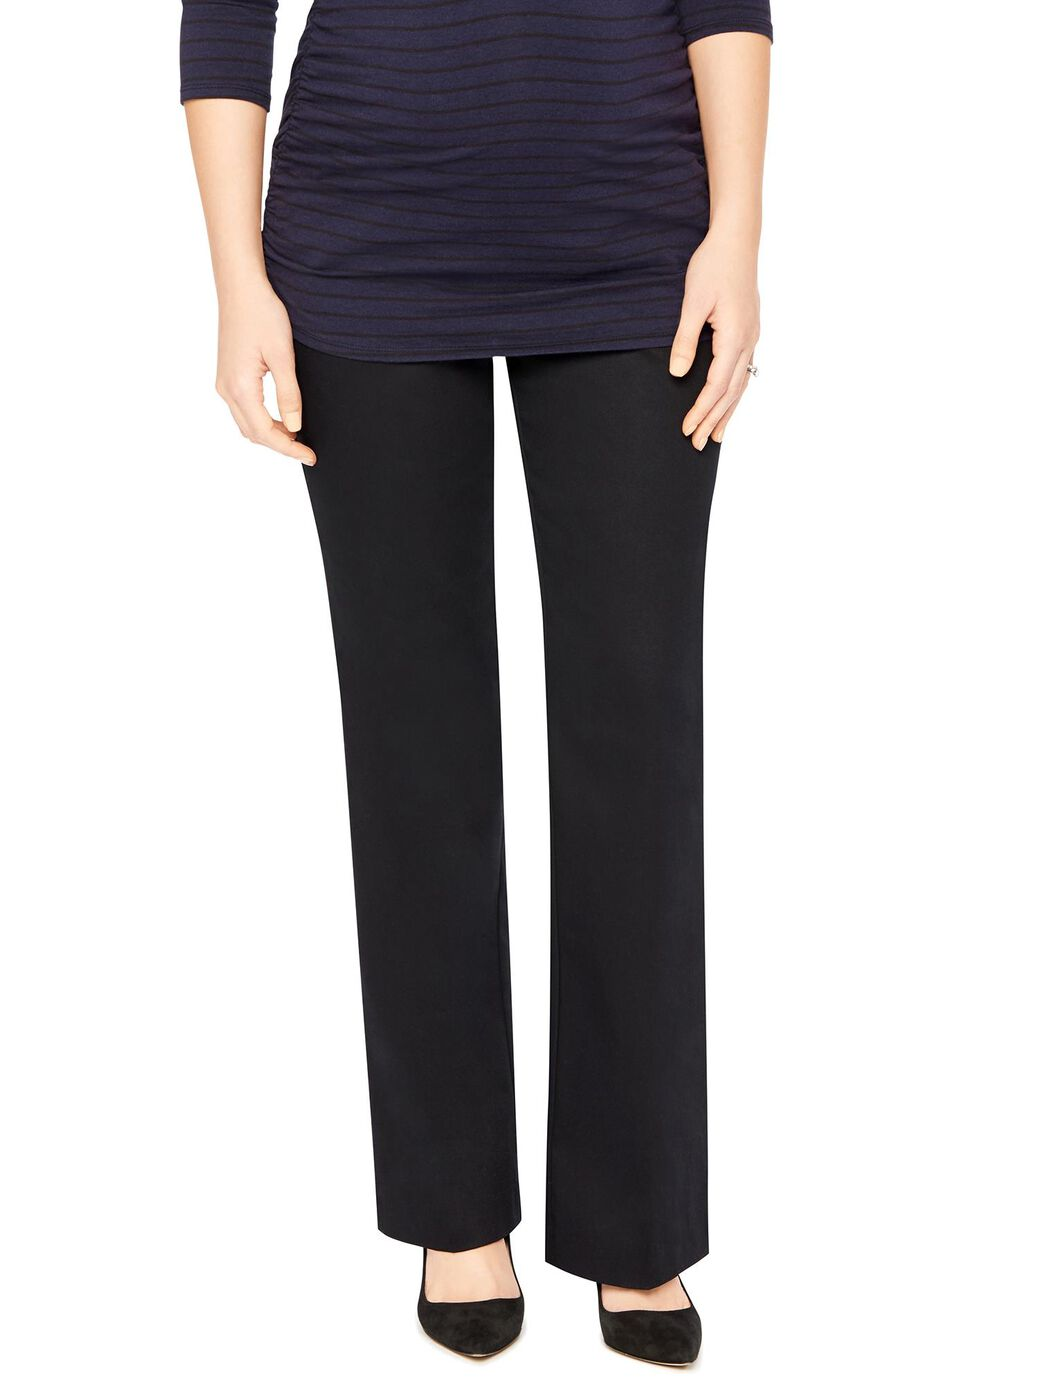 Petite Secret Fit Belly Twill Boot Cut Maternity Pants at Motherhood Maternity in Victor, NY | Tuggl